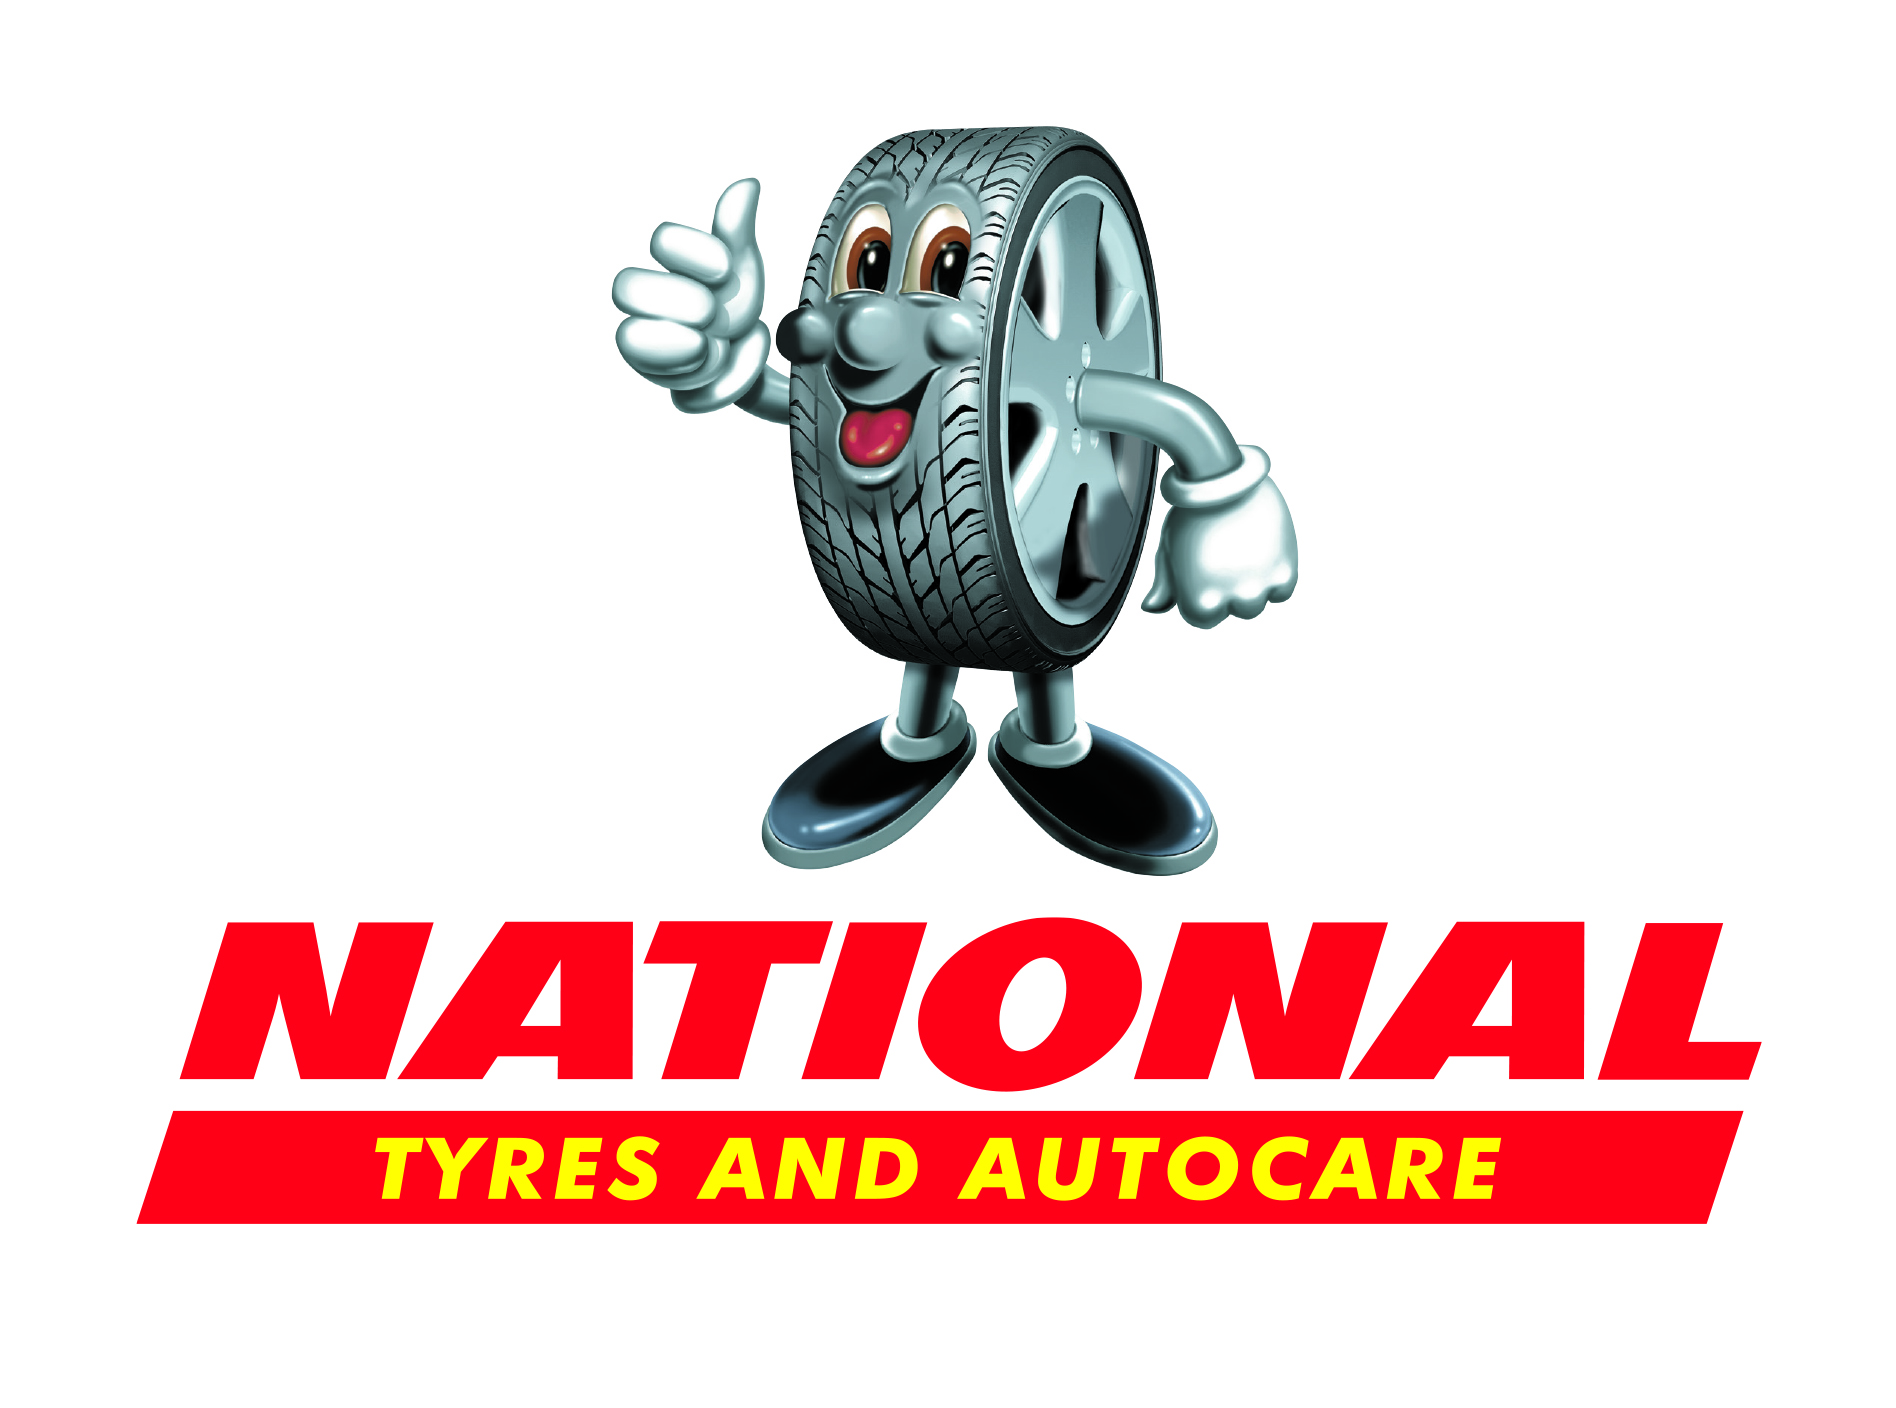 National Tyres logo on white background